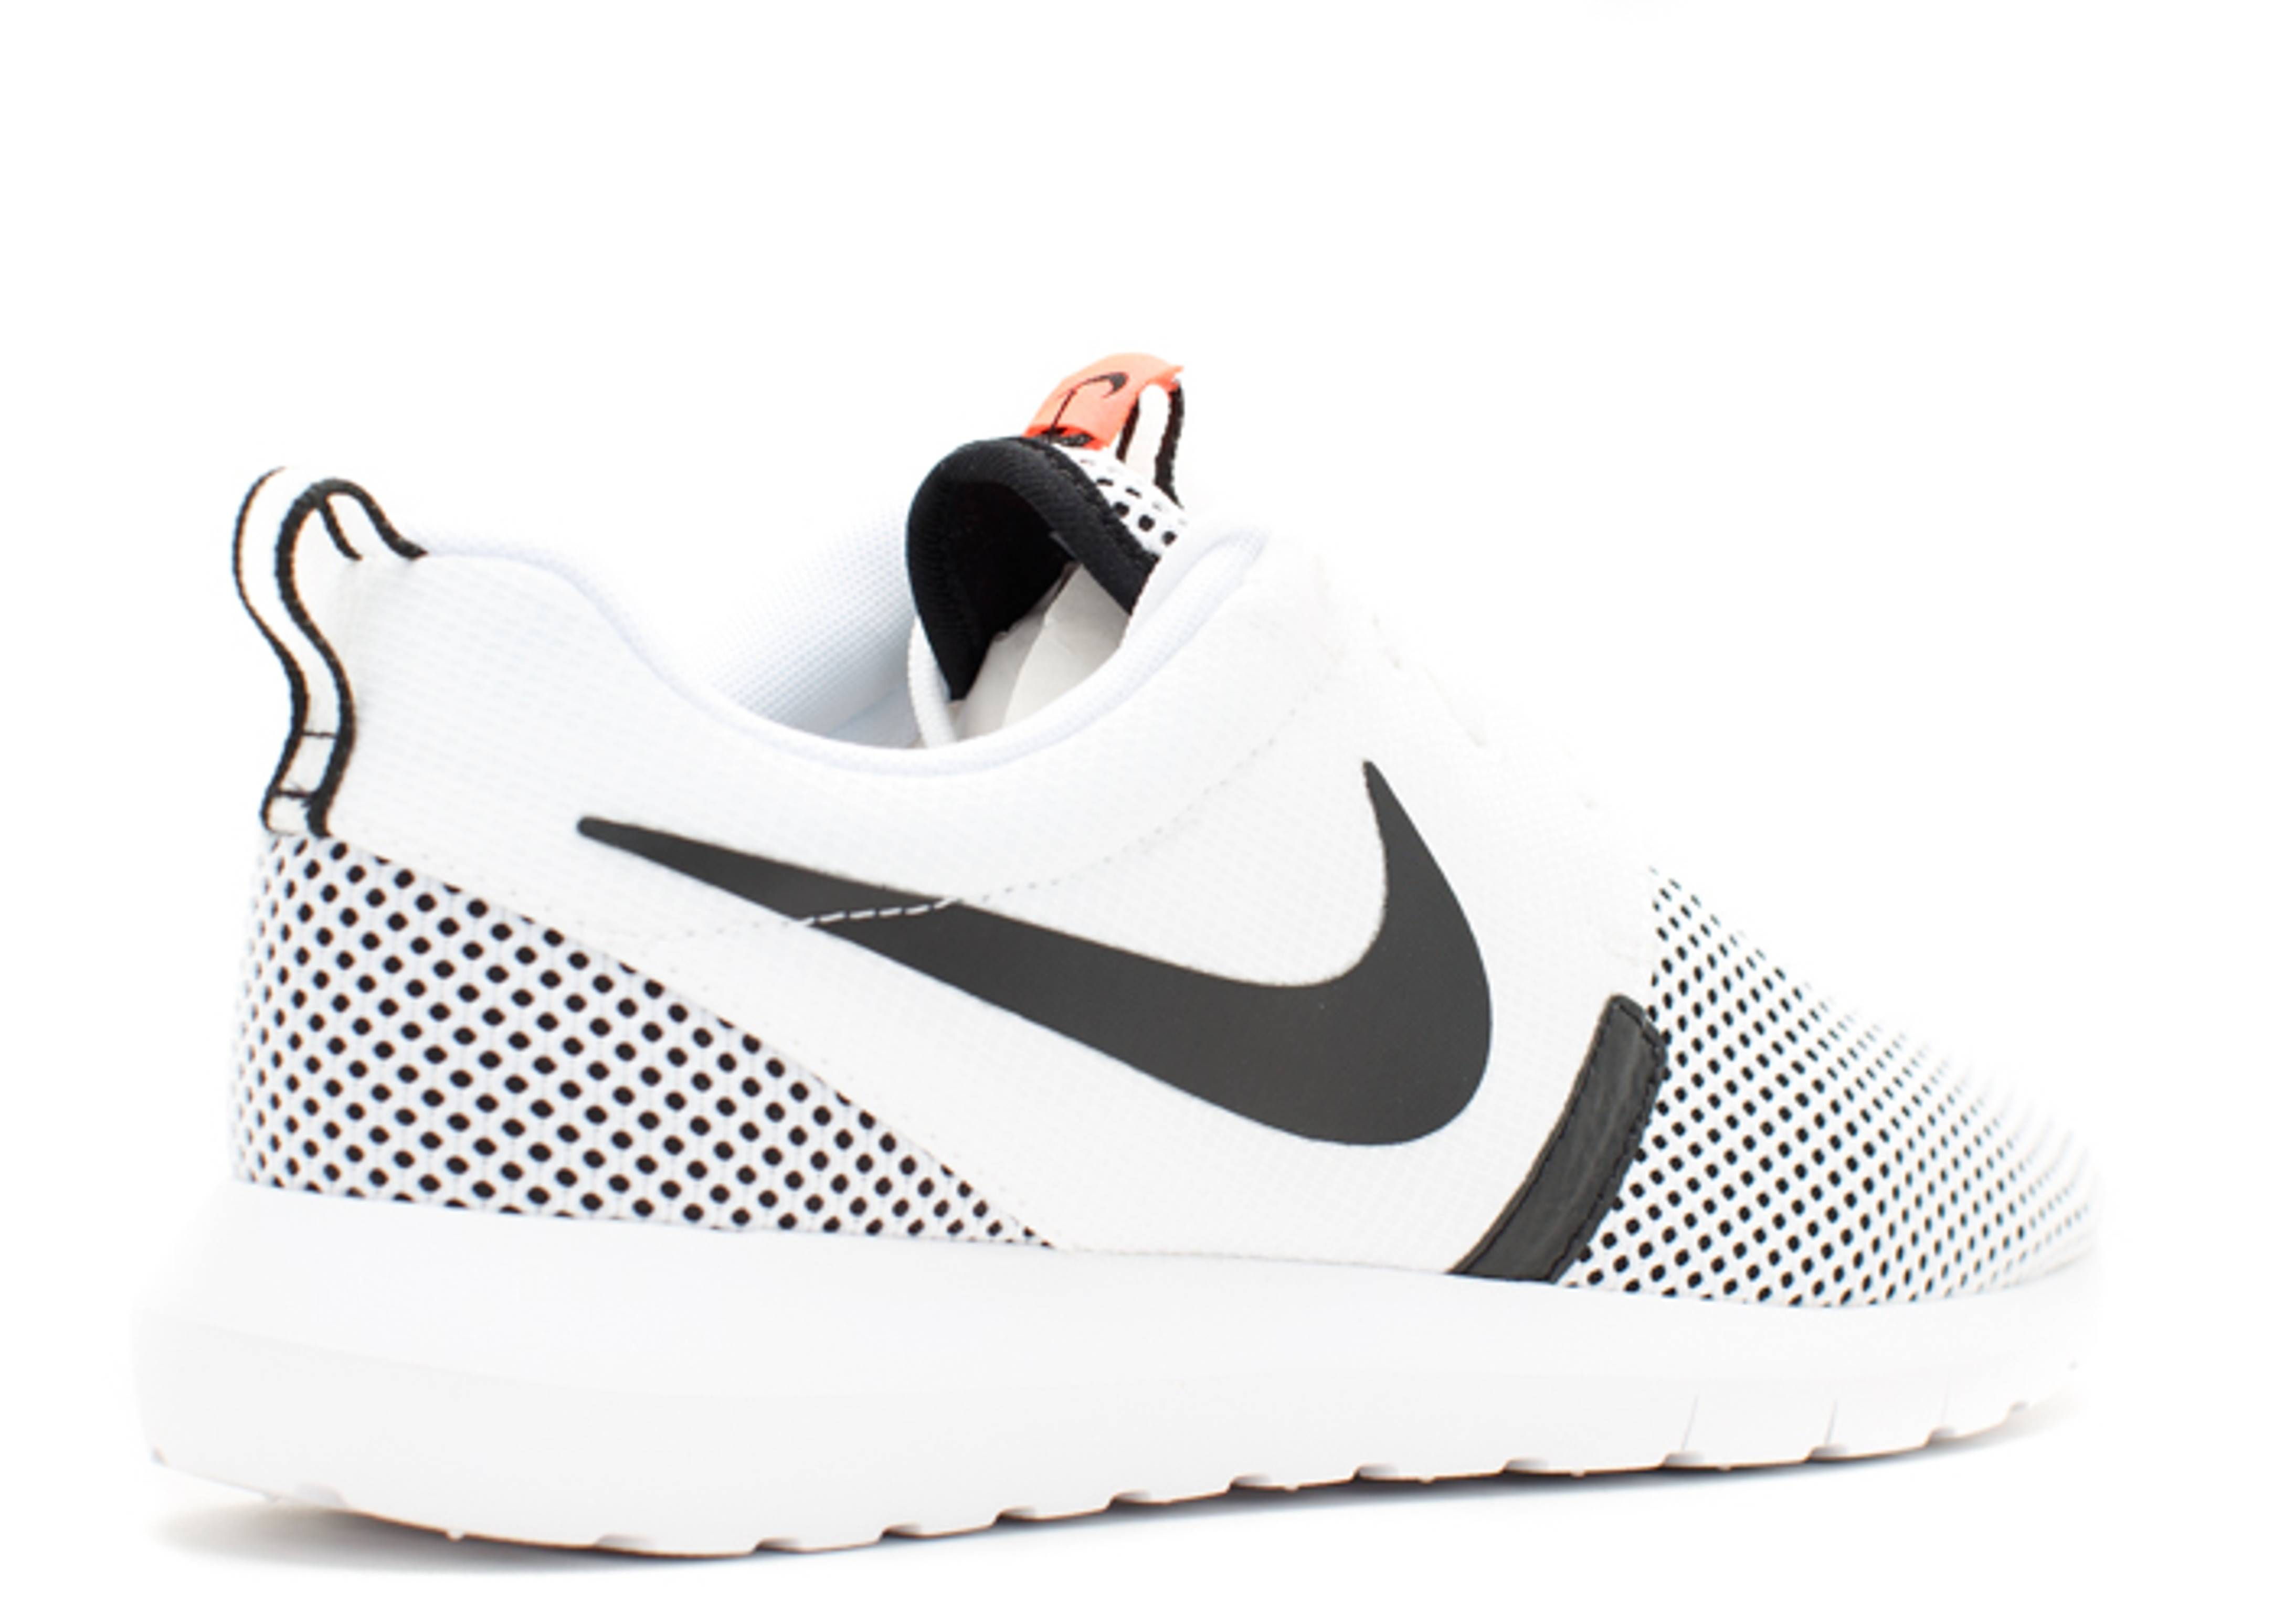 8699aad97230f new zealand roshe run nm br nike 644425 100 white white black hot lava  flight club